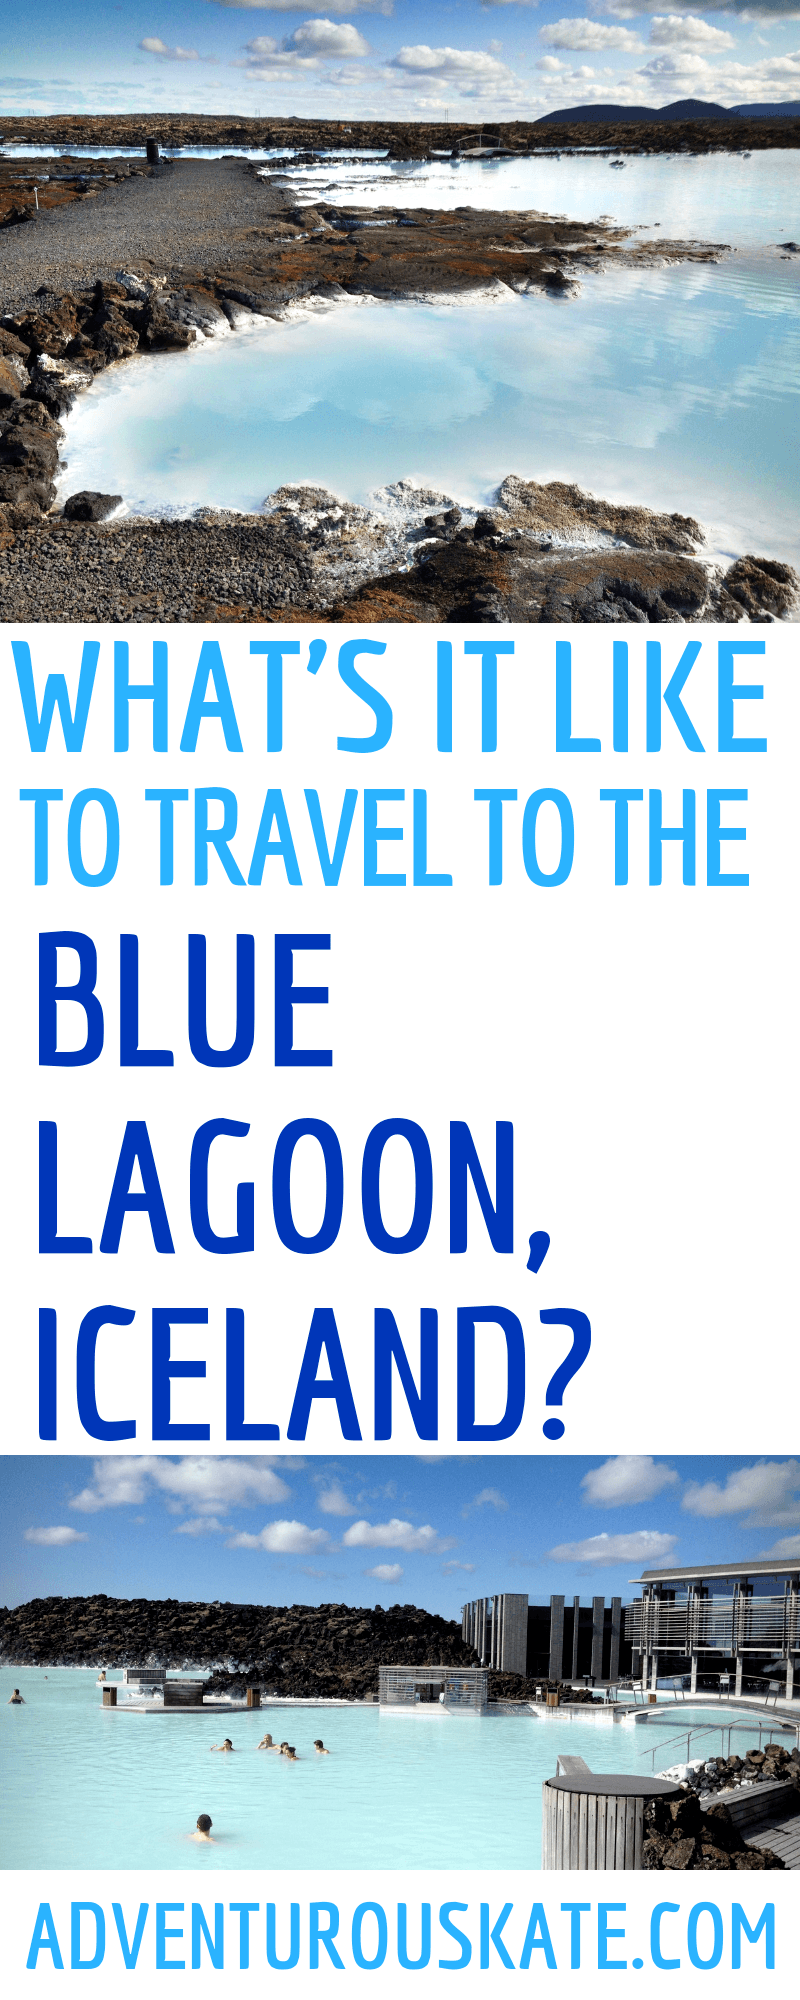 Pinterest Graphic: What's it like to travel to the Blue Lagoon, Iceland?